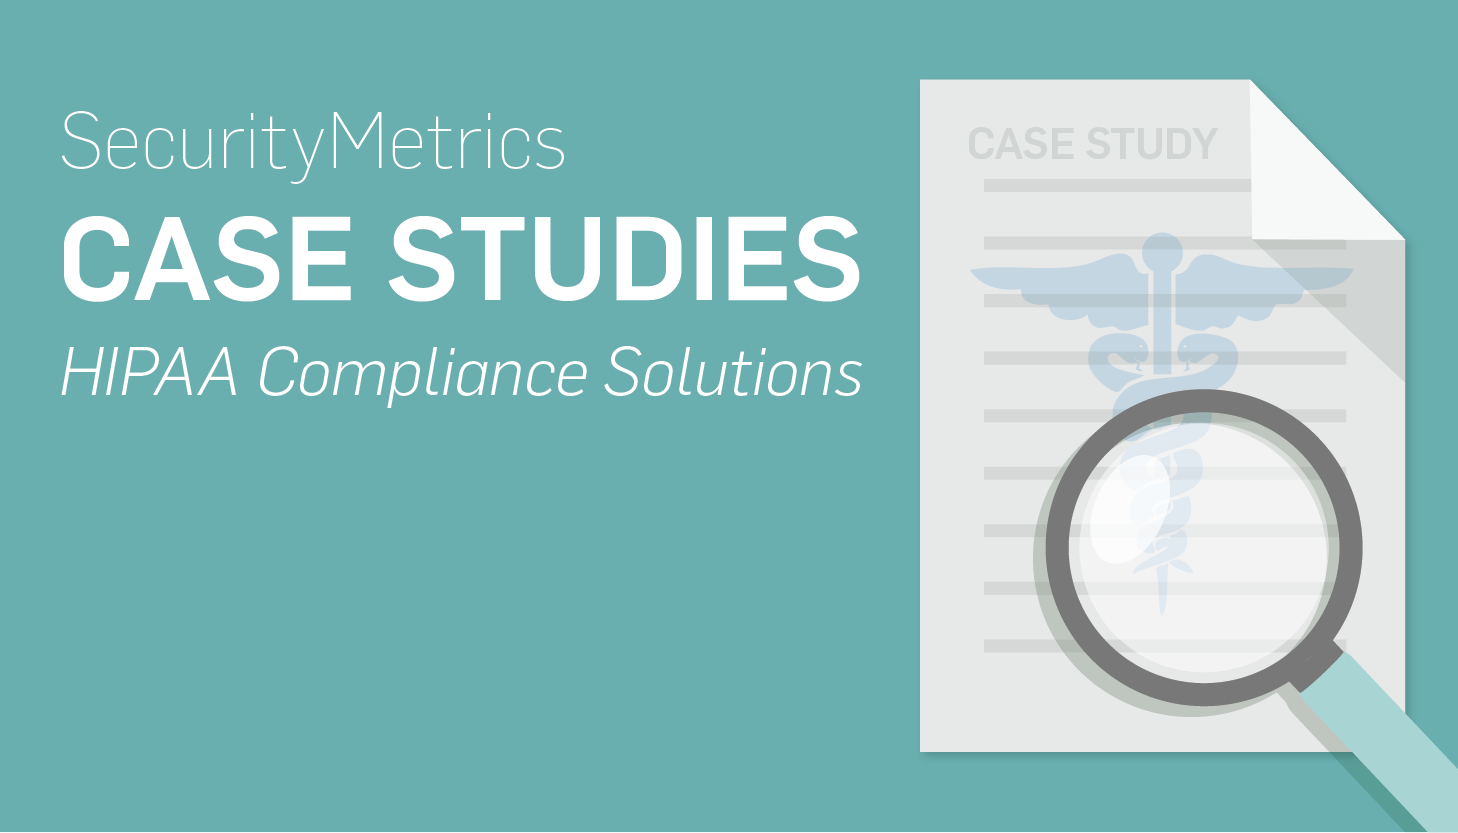 Healthcare Compliance Case Studies for HIPAA Solutions